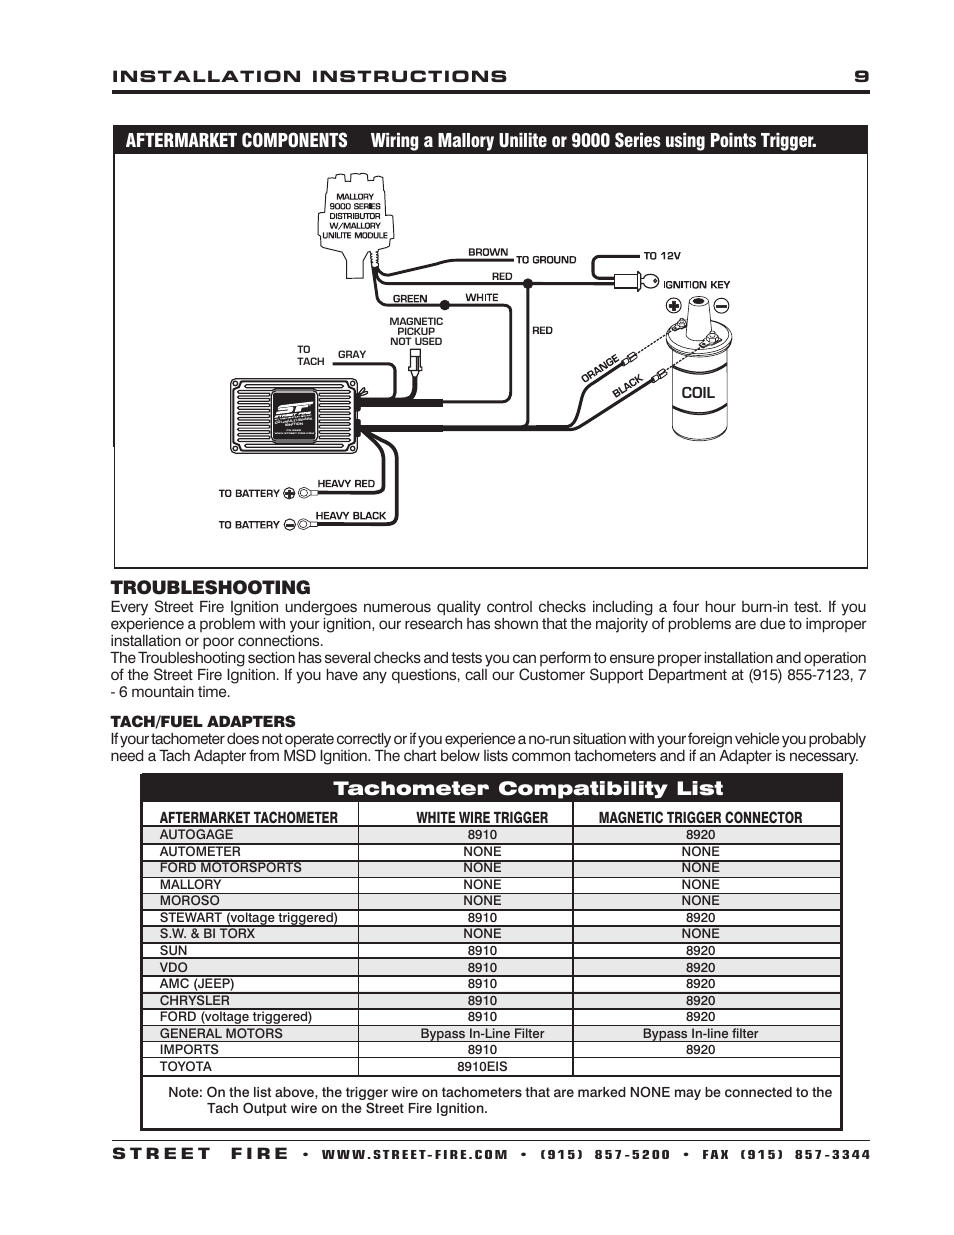 msd 5520 street fire ignition control installation page9?resize=665%2C861 mallory high fire ignition wiring diagrams mallory dist wiring mallory hyfire 6al wiring diagram at bakdesigns.co